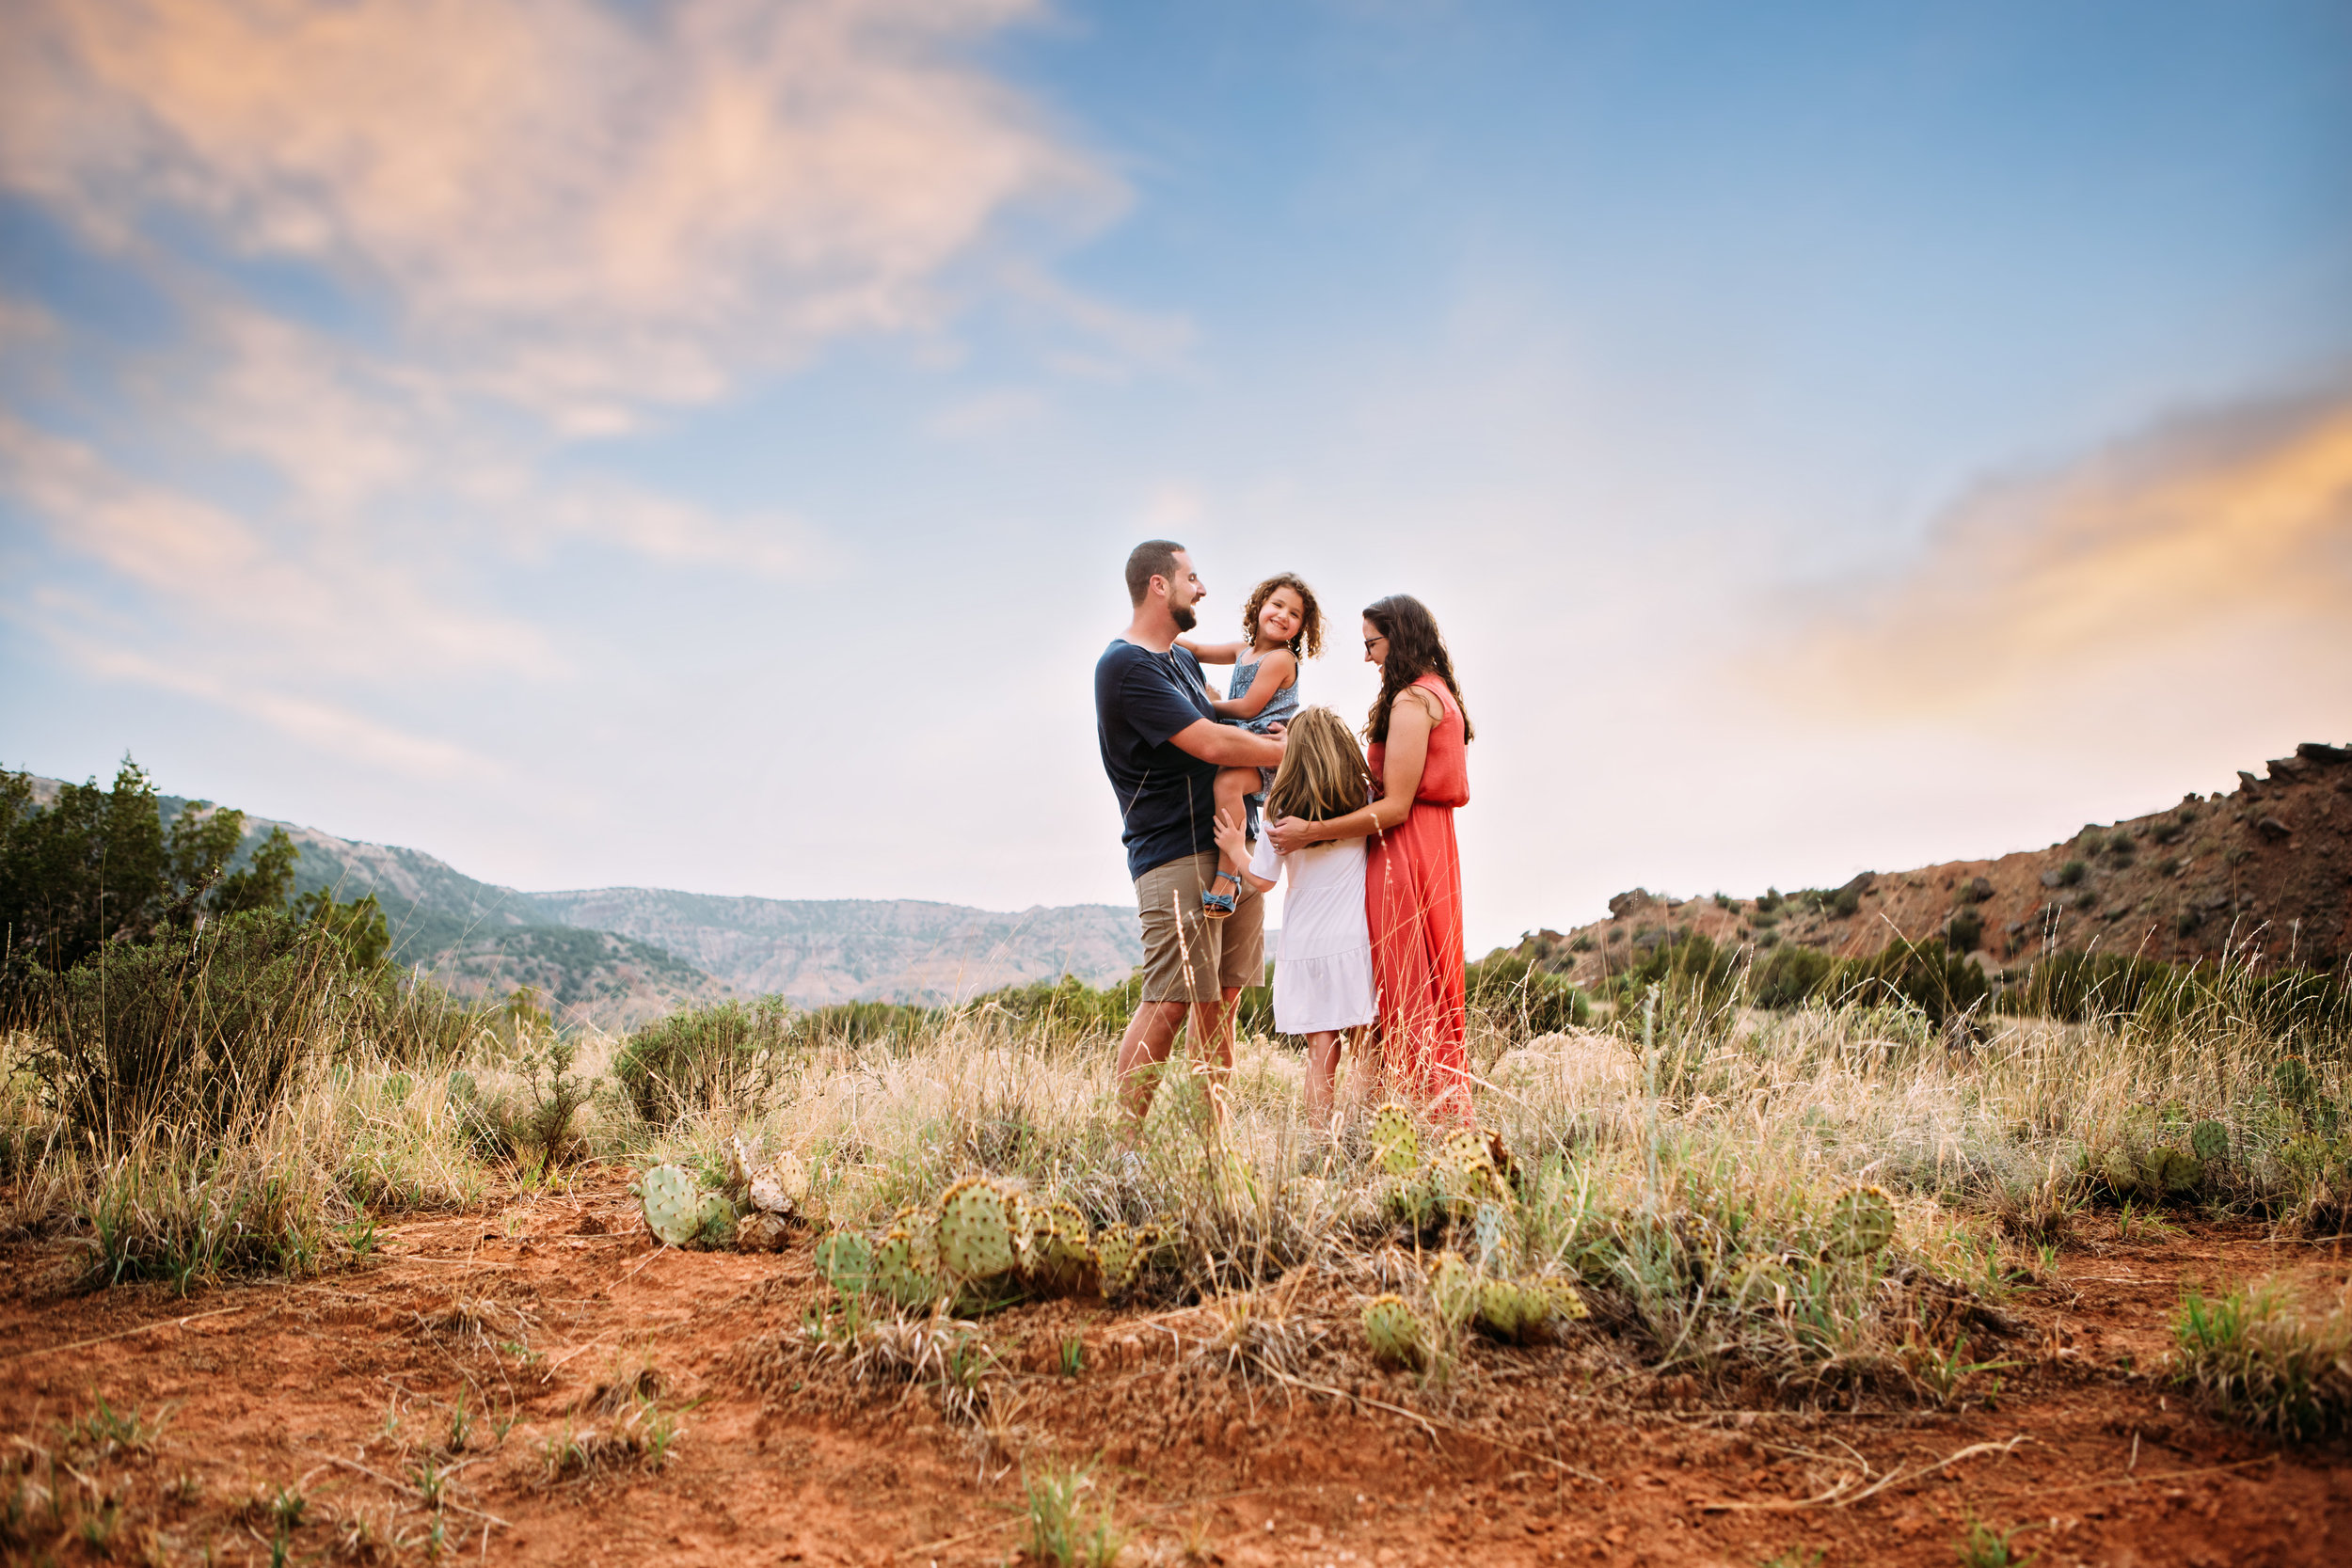 Summer photography session with family in front of red rocks and natural landscape #tealawardphotography #texassummerphotographer #pictureseason #amarillophotographer #amarillofamilyphotographer #emotionalphotography #engagementphotography #couplesphotography #pickingaseasonforphotosessions #whatsimportant #everythingtogether #pickingcolorsforphotos #summerphotos #greeneryinphotos